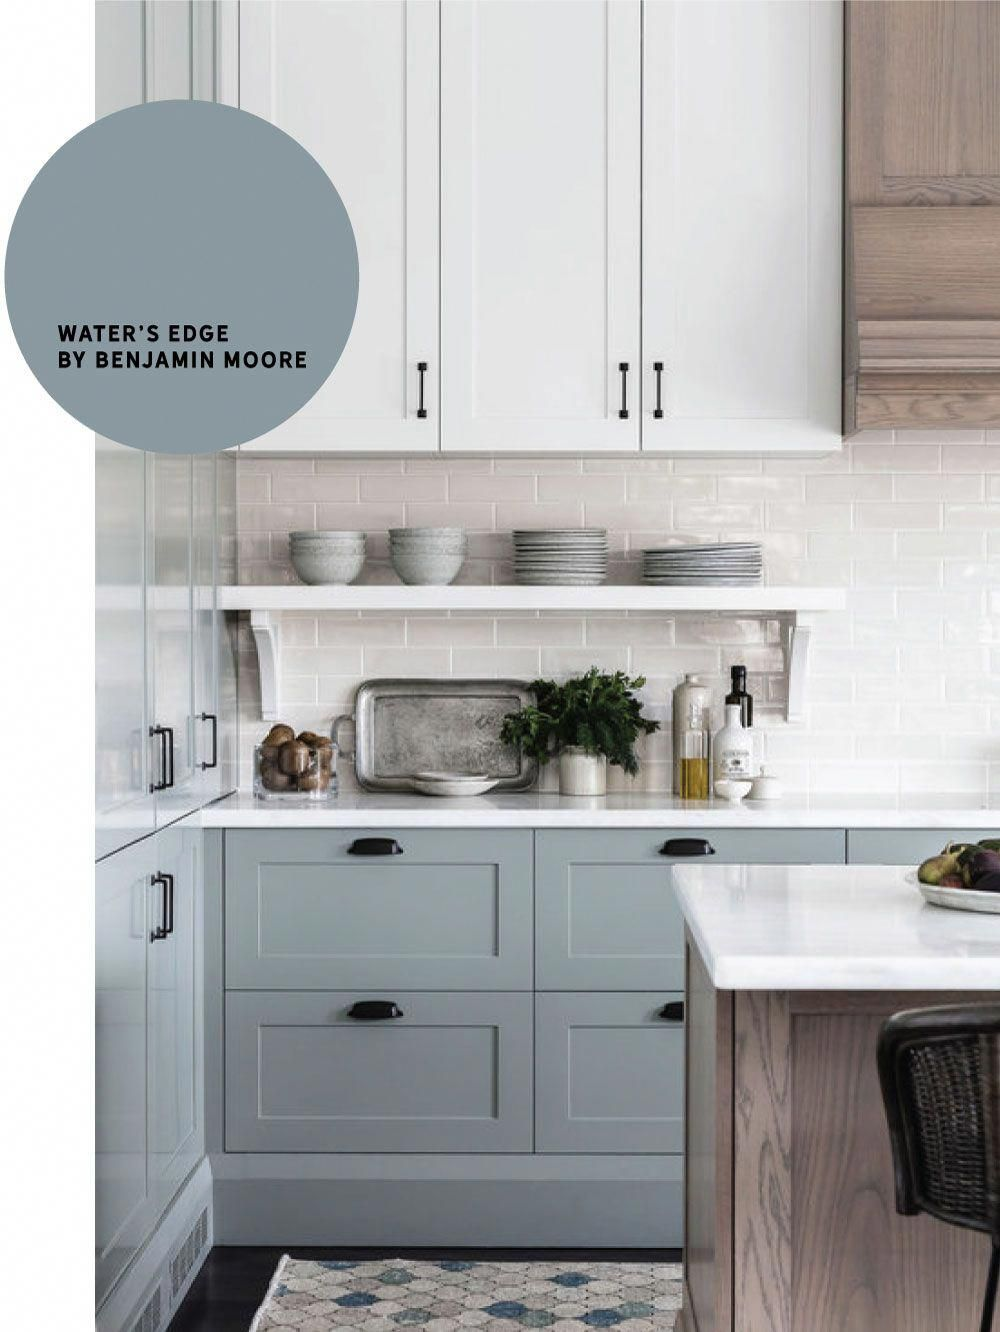 10 Really Amazing Blue Gray Paint Colors In Action Chris Loves Julia Water S Edge By Benjamin M Kitchen Cabinet Colors Blue Gray Paint Colors Kitchen Design